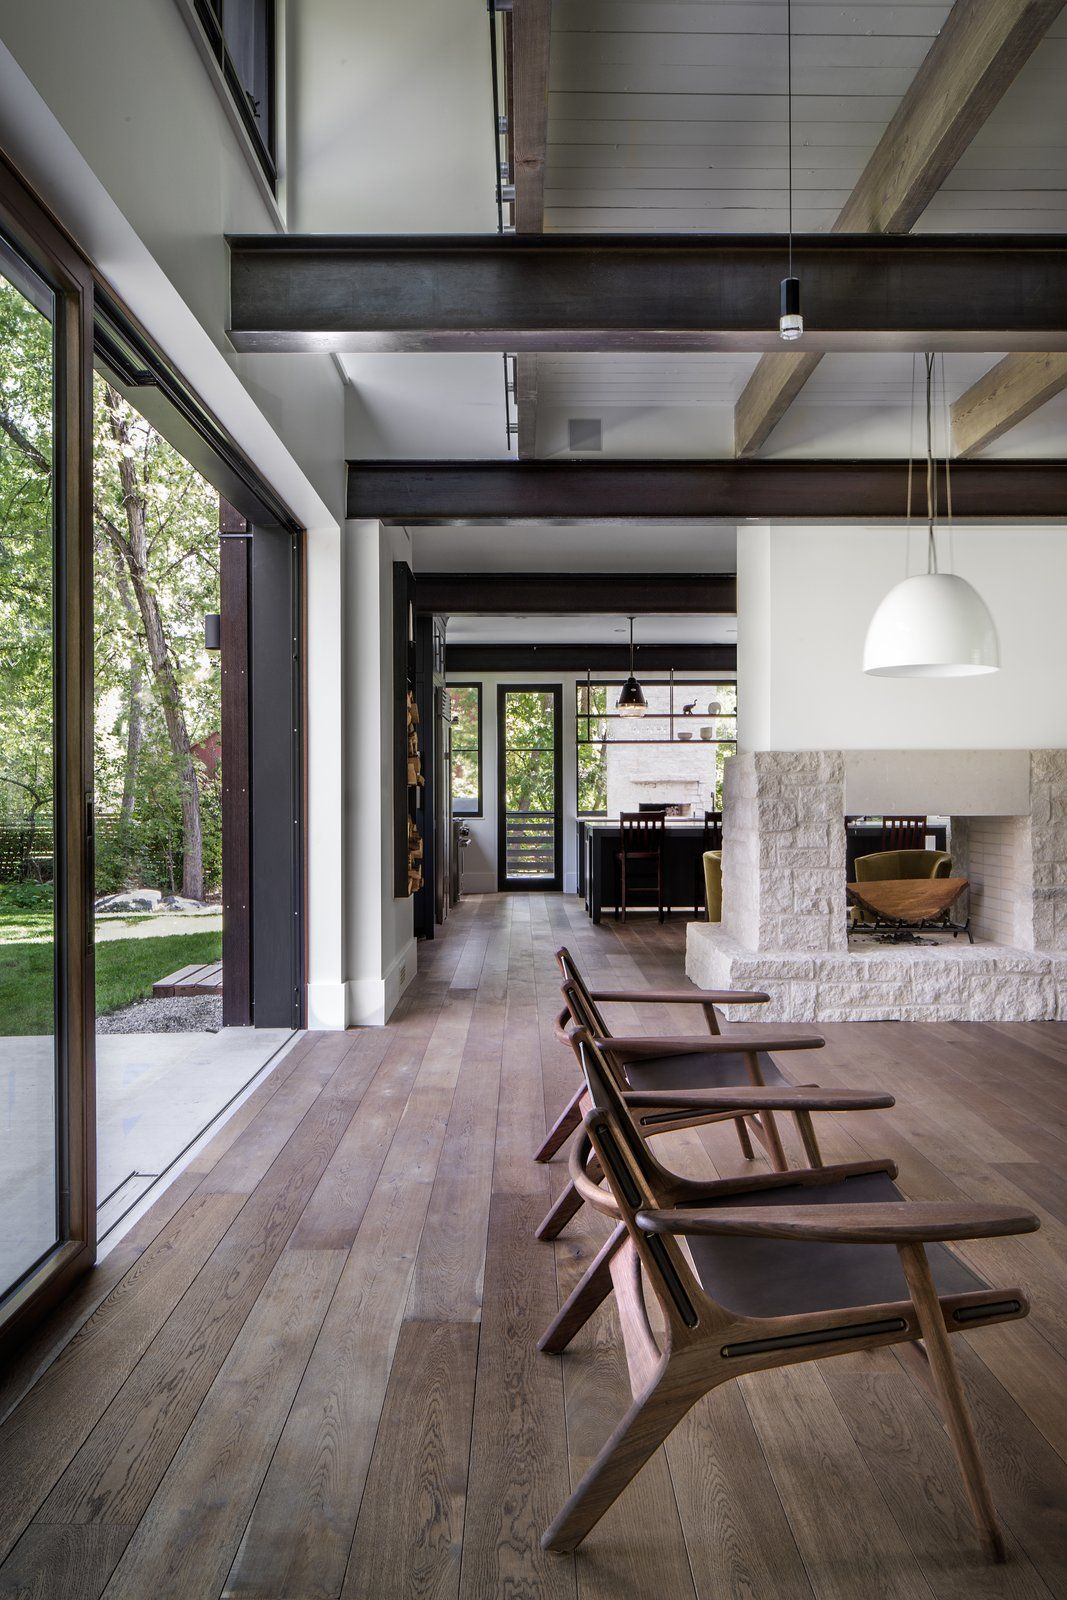 A colorado home puts a modern twist on farmhouse living photo 7 of 11 the chairs pictured above are from room and board